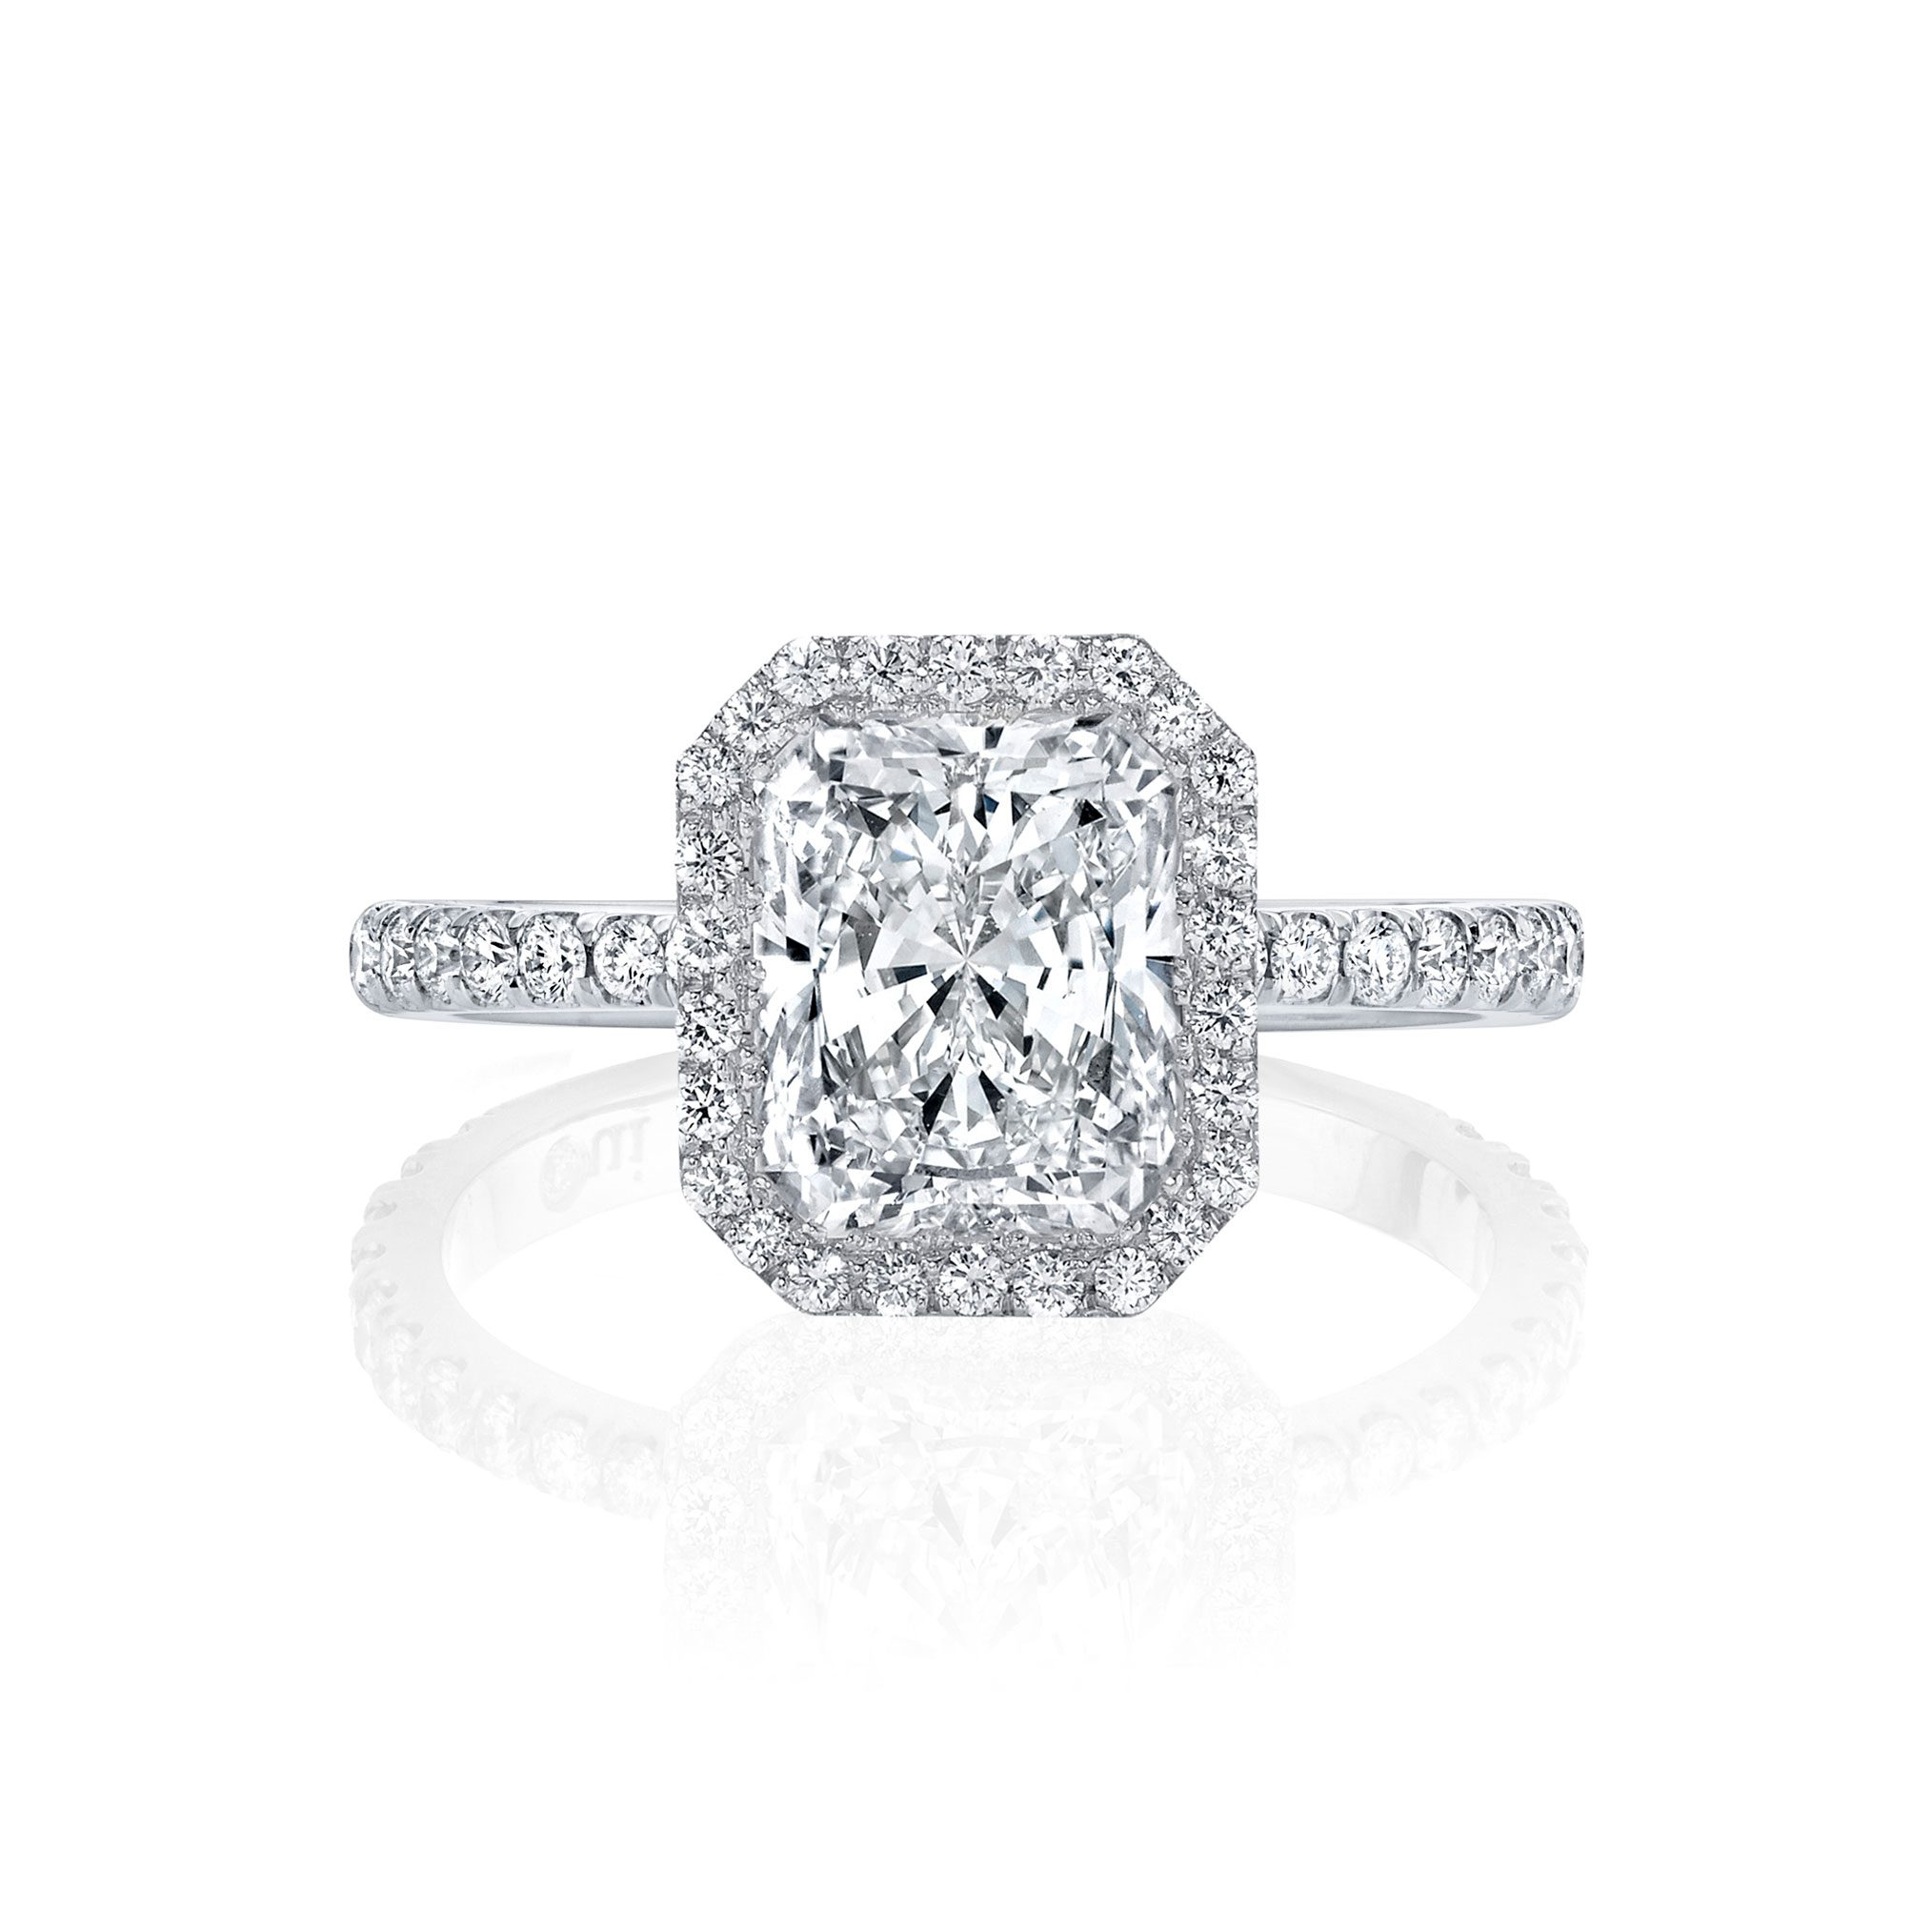 Eloise Seamless Halo® Engagement Ring Radiant Cut Ring with 18k white gold pavé band